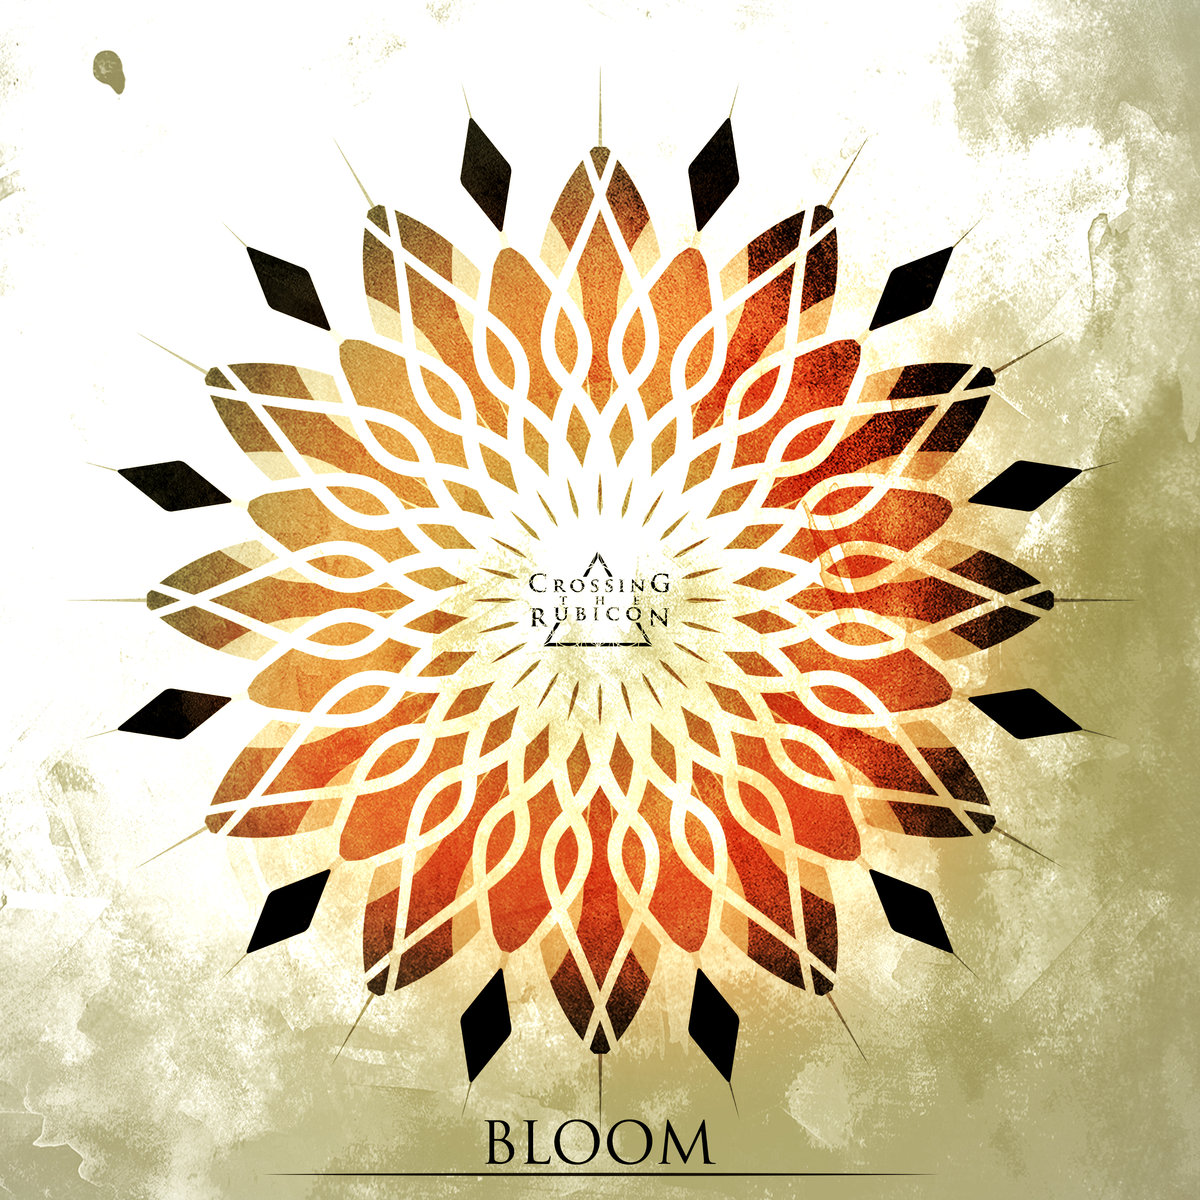 Crossing the Rubicon - Bloom